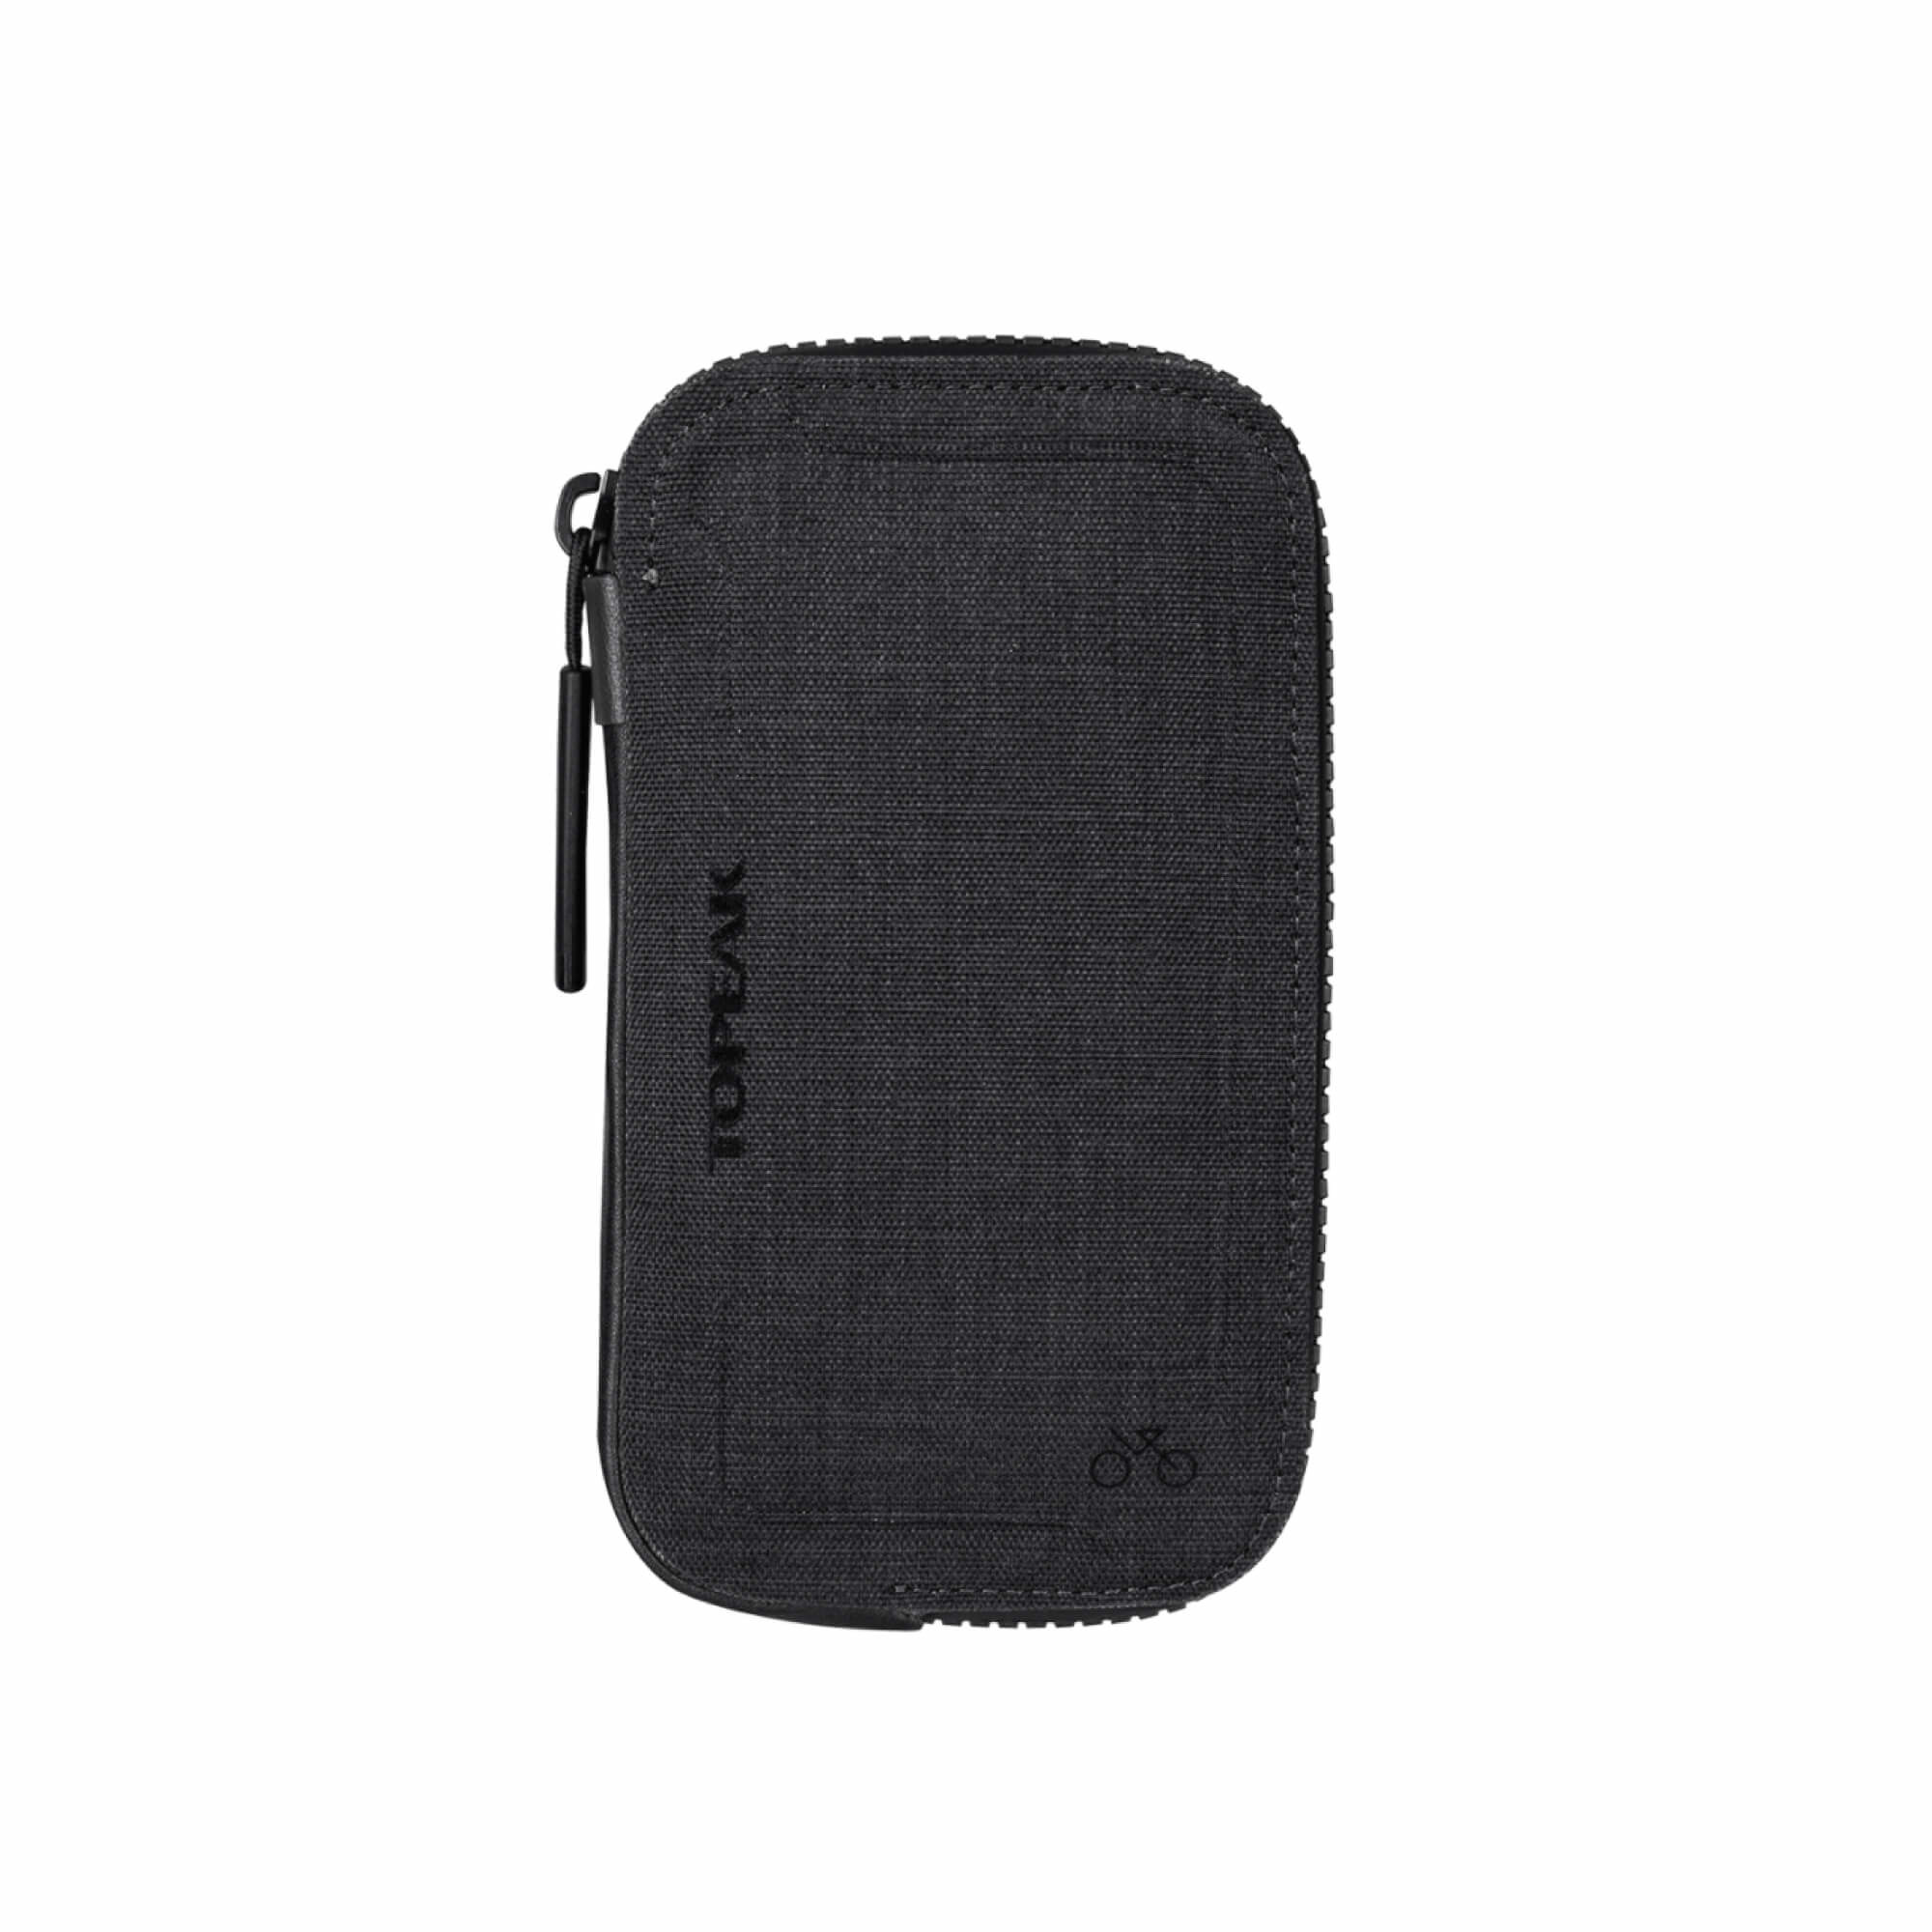 "Cycling Wallet 4.7"", Black-2"